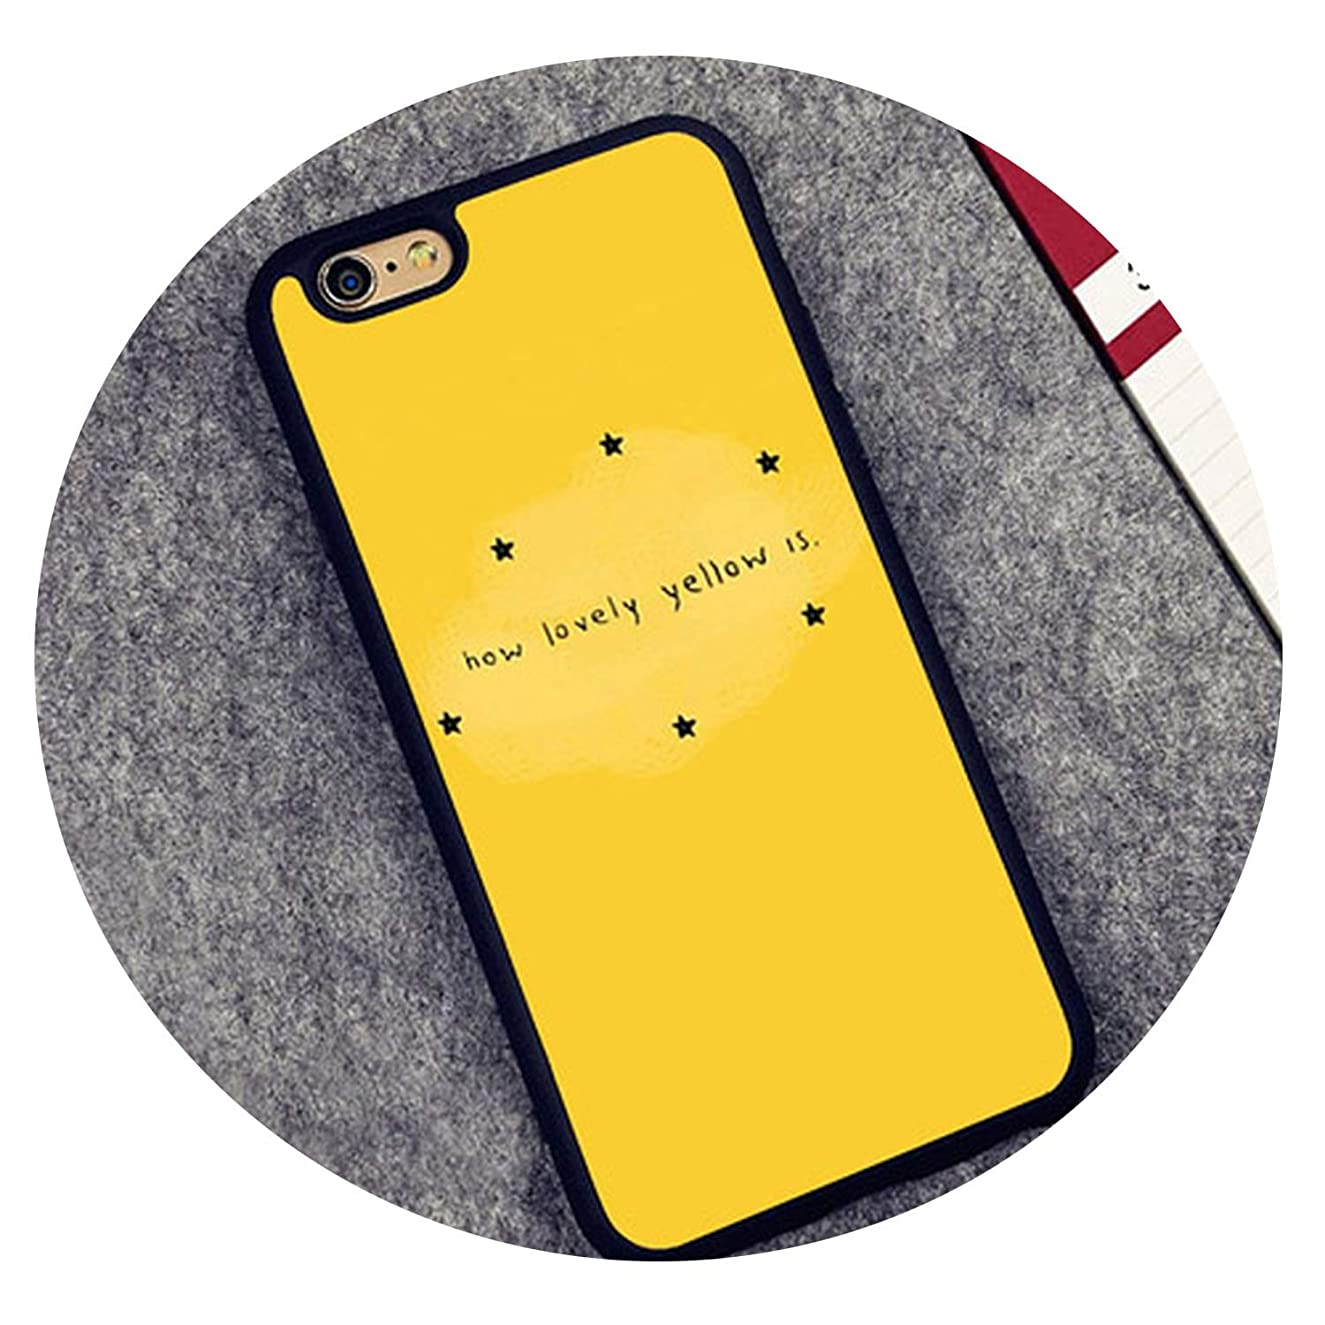 Yellow Aesthetic Art Soft Rubber Phone Cases for iPhone 6 6S Plus 7 8Plus X XR XS MAX 5 5S SE Cover Bags Skin Shell,2322,for iPhone XR